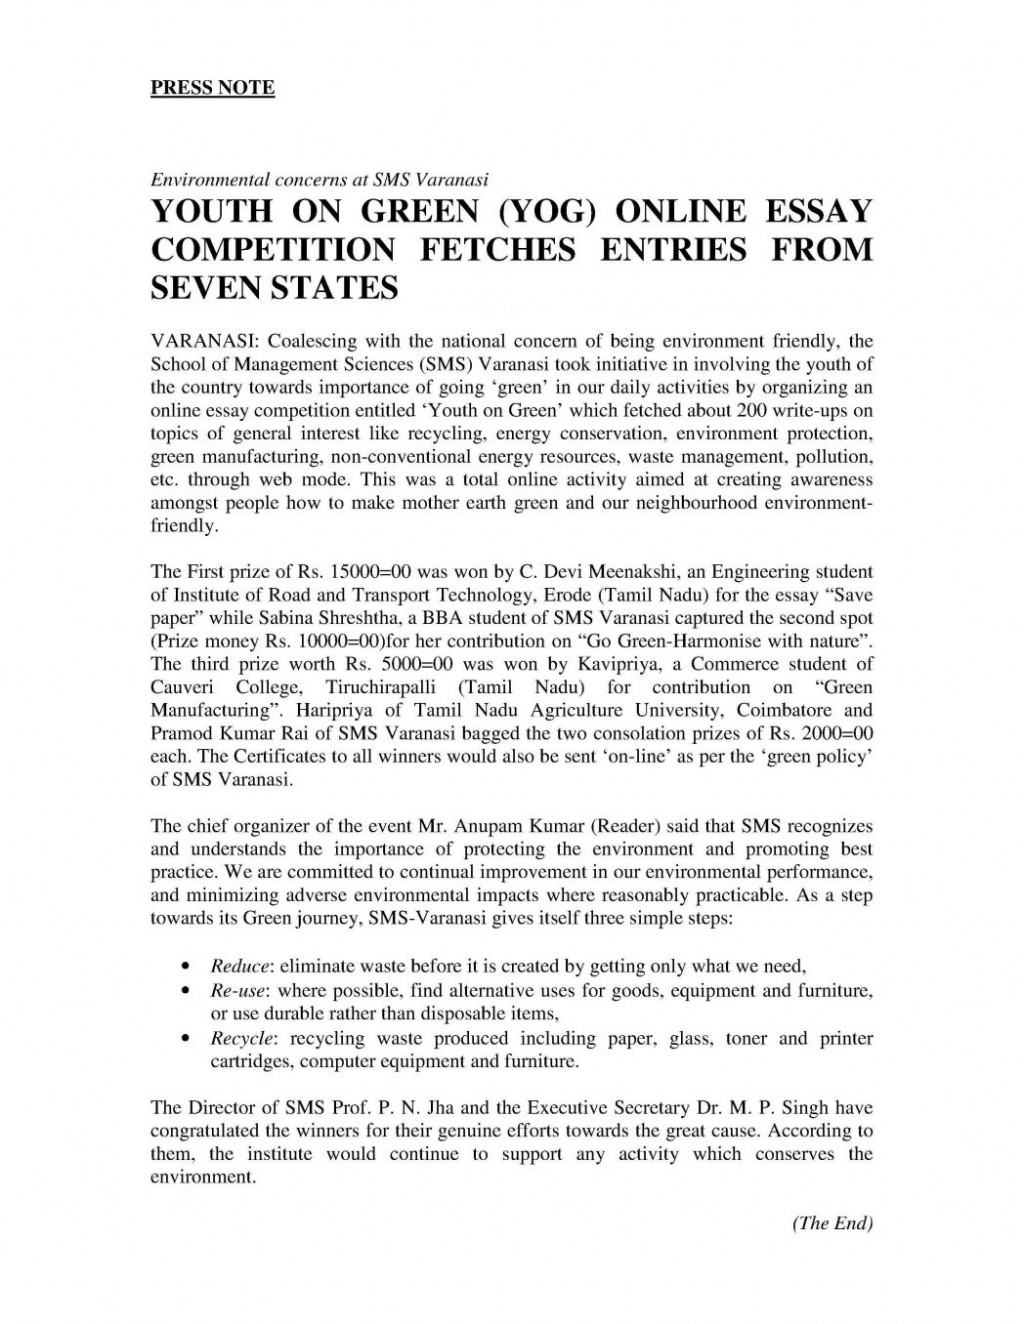 020 Best Essays For College Essay On Good Habits How Tot Application Online Yog Press Re About Yourself Examples Your Background Failure Prompt Off Hook 1048x1356 Example Amazing To Start An A Definition Begin With Dictionary Large